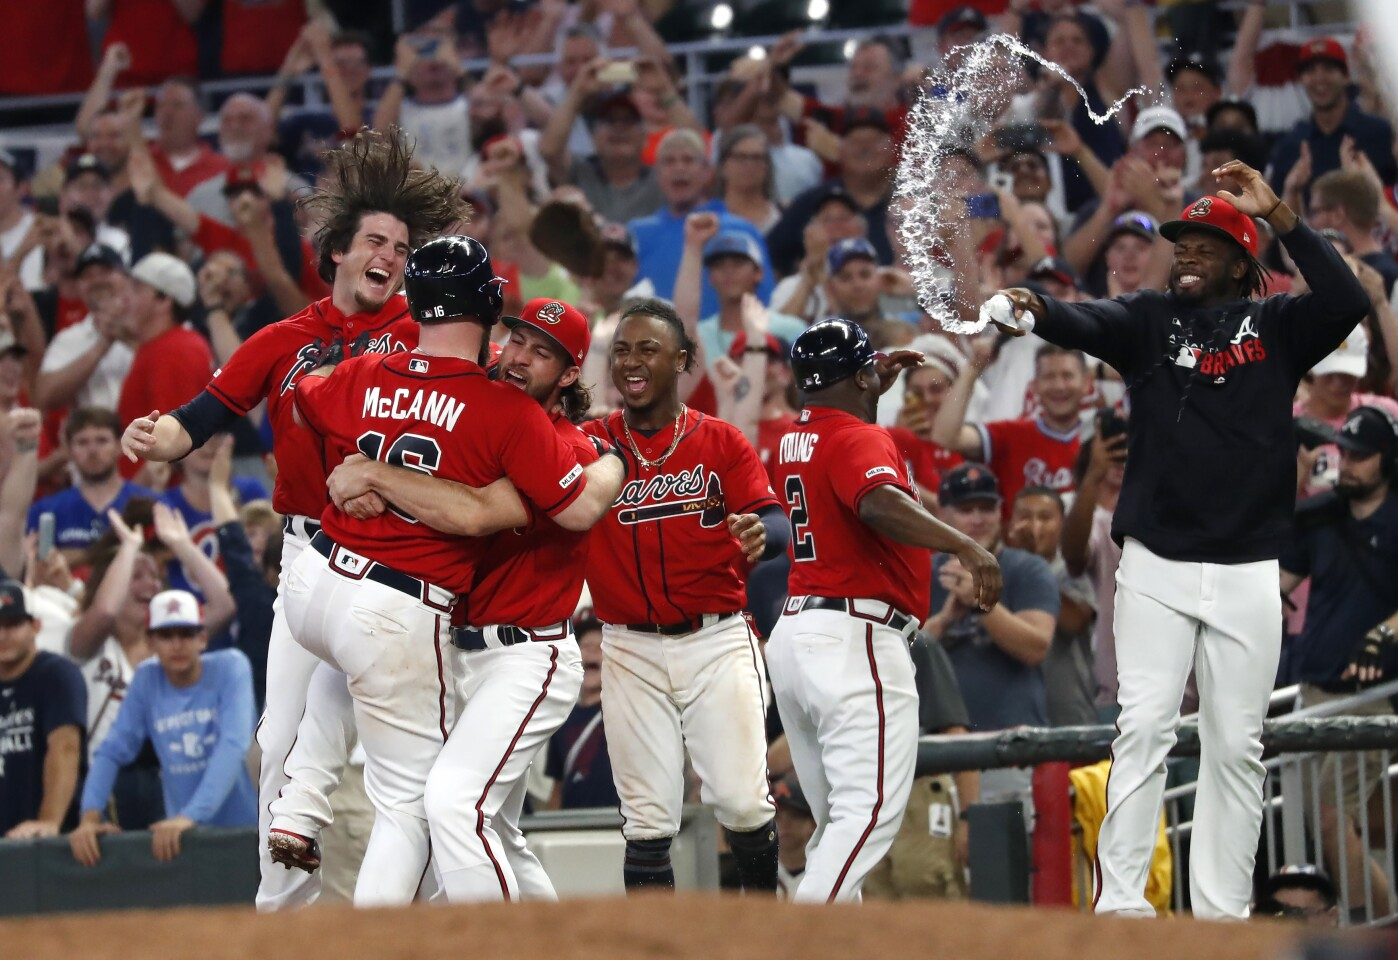 Atlanta Braves' Brian McCann (16) is mobbed by his teammates after driving in the winning run with a base hit in the ninth inning of a baseball game against the Miami Marlins early Saturday, July 6, 2019, in Atlanta. The Braves won 1-0. (AP Photo/John Bazemore)